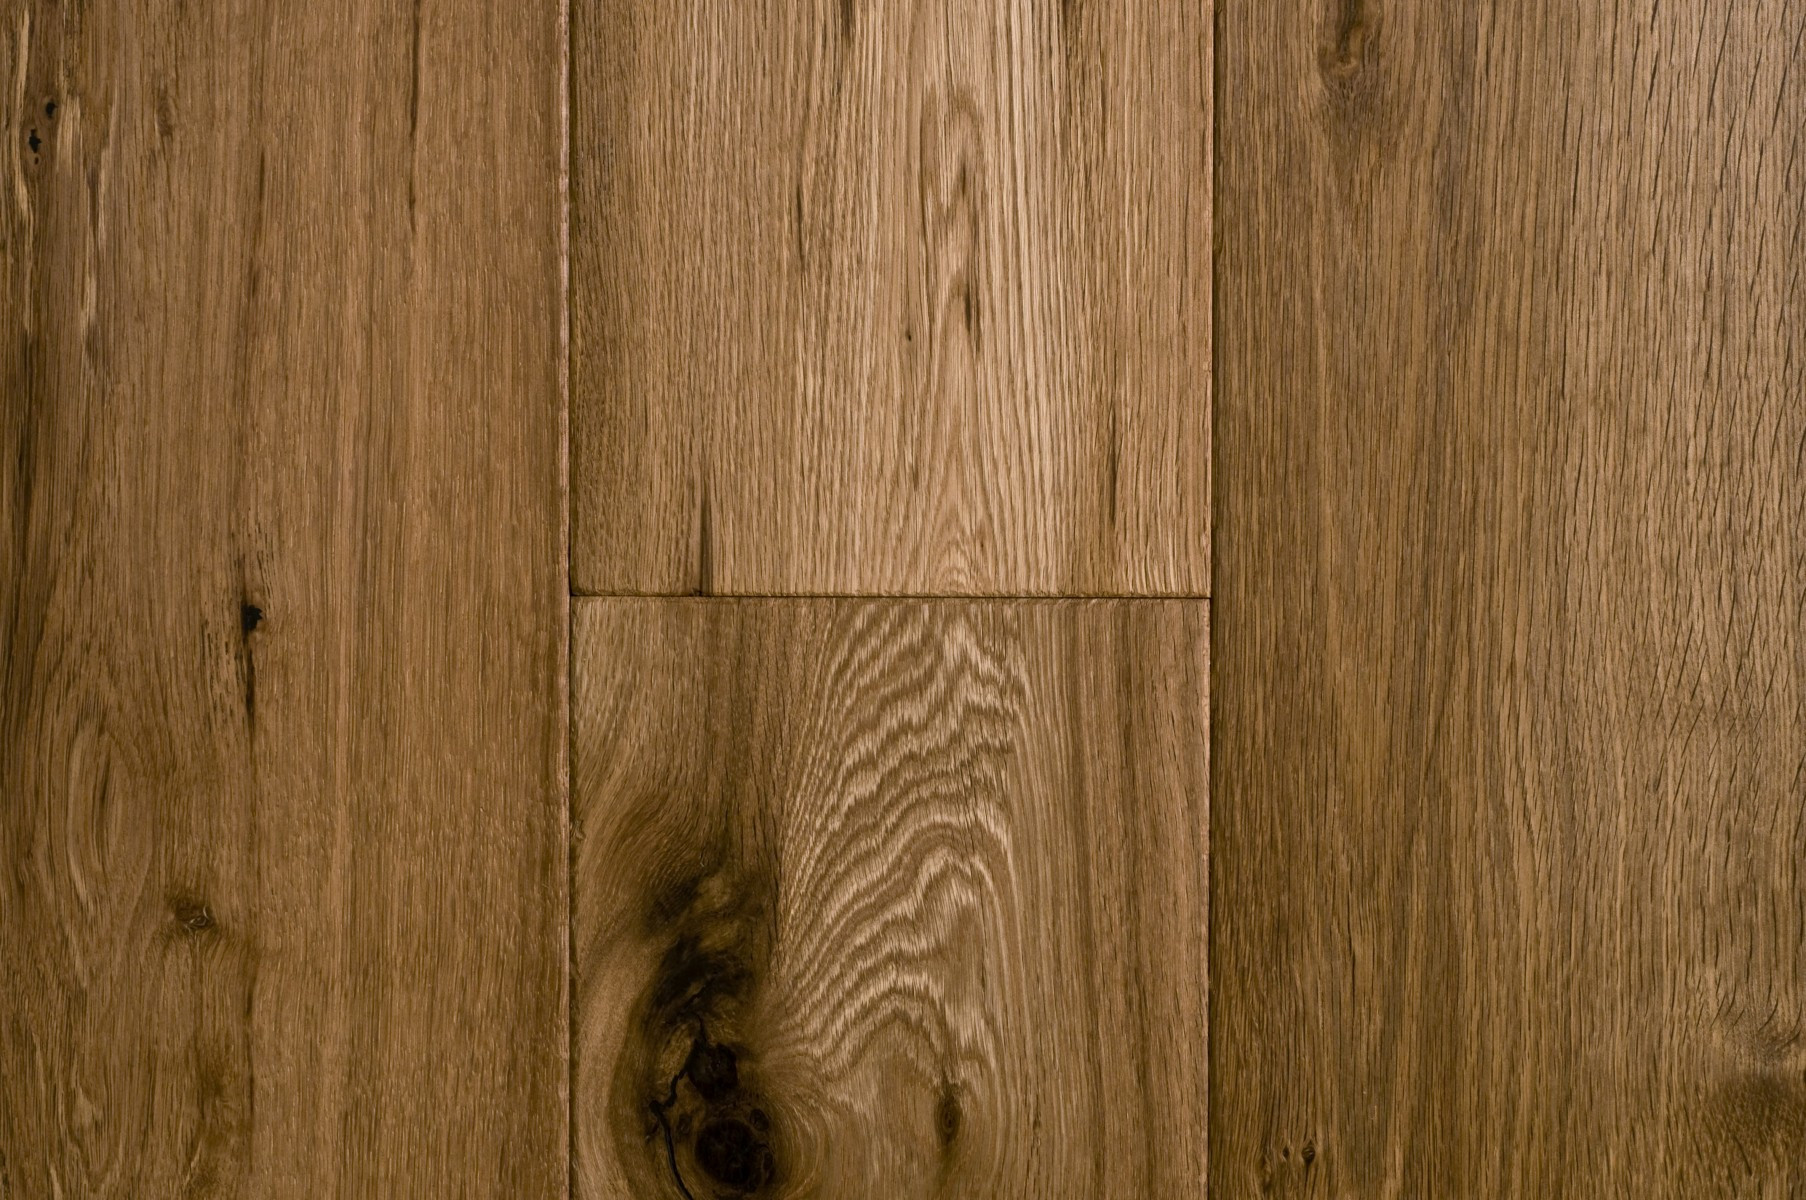 Cheap Hardwood Floor Installation Of Duchateau Hardwood Flooring Houston Tx Discount Engineered Wood Pertaining to Olde Dutch European Oak